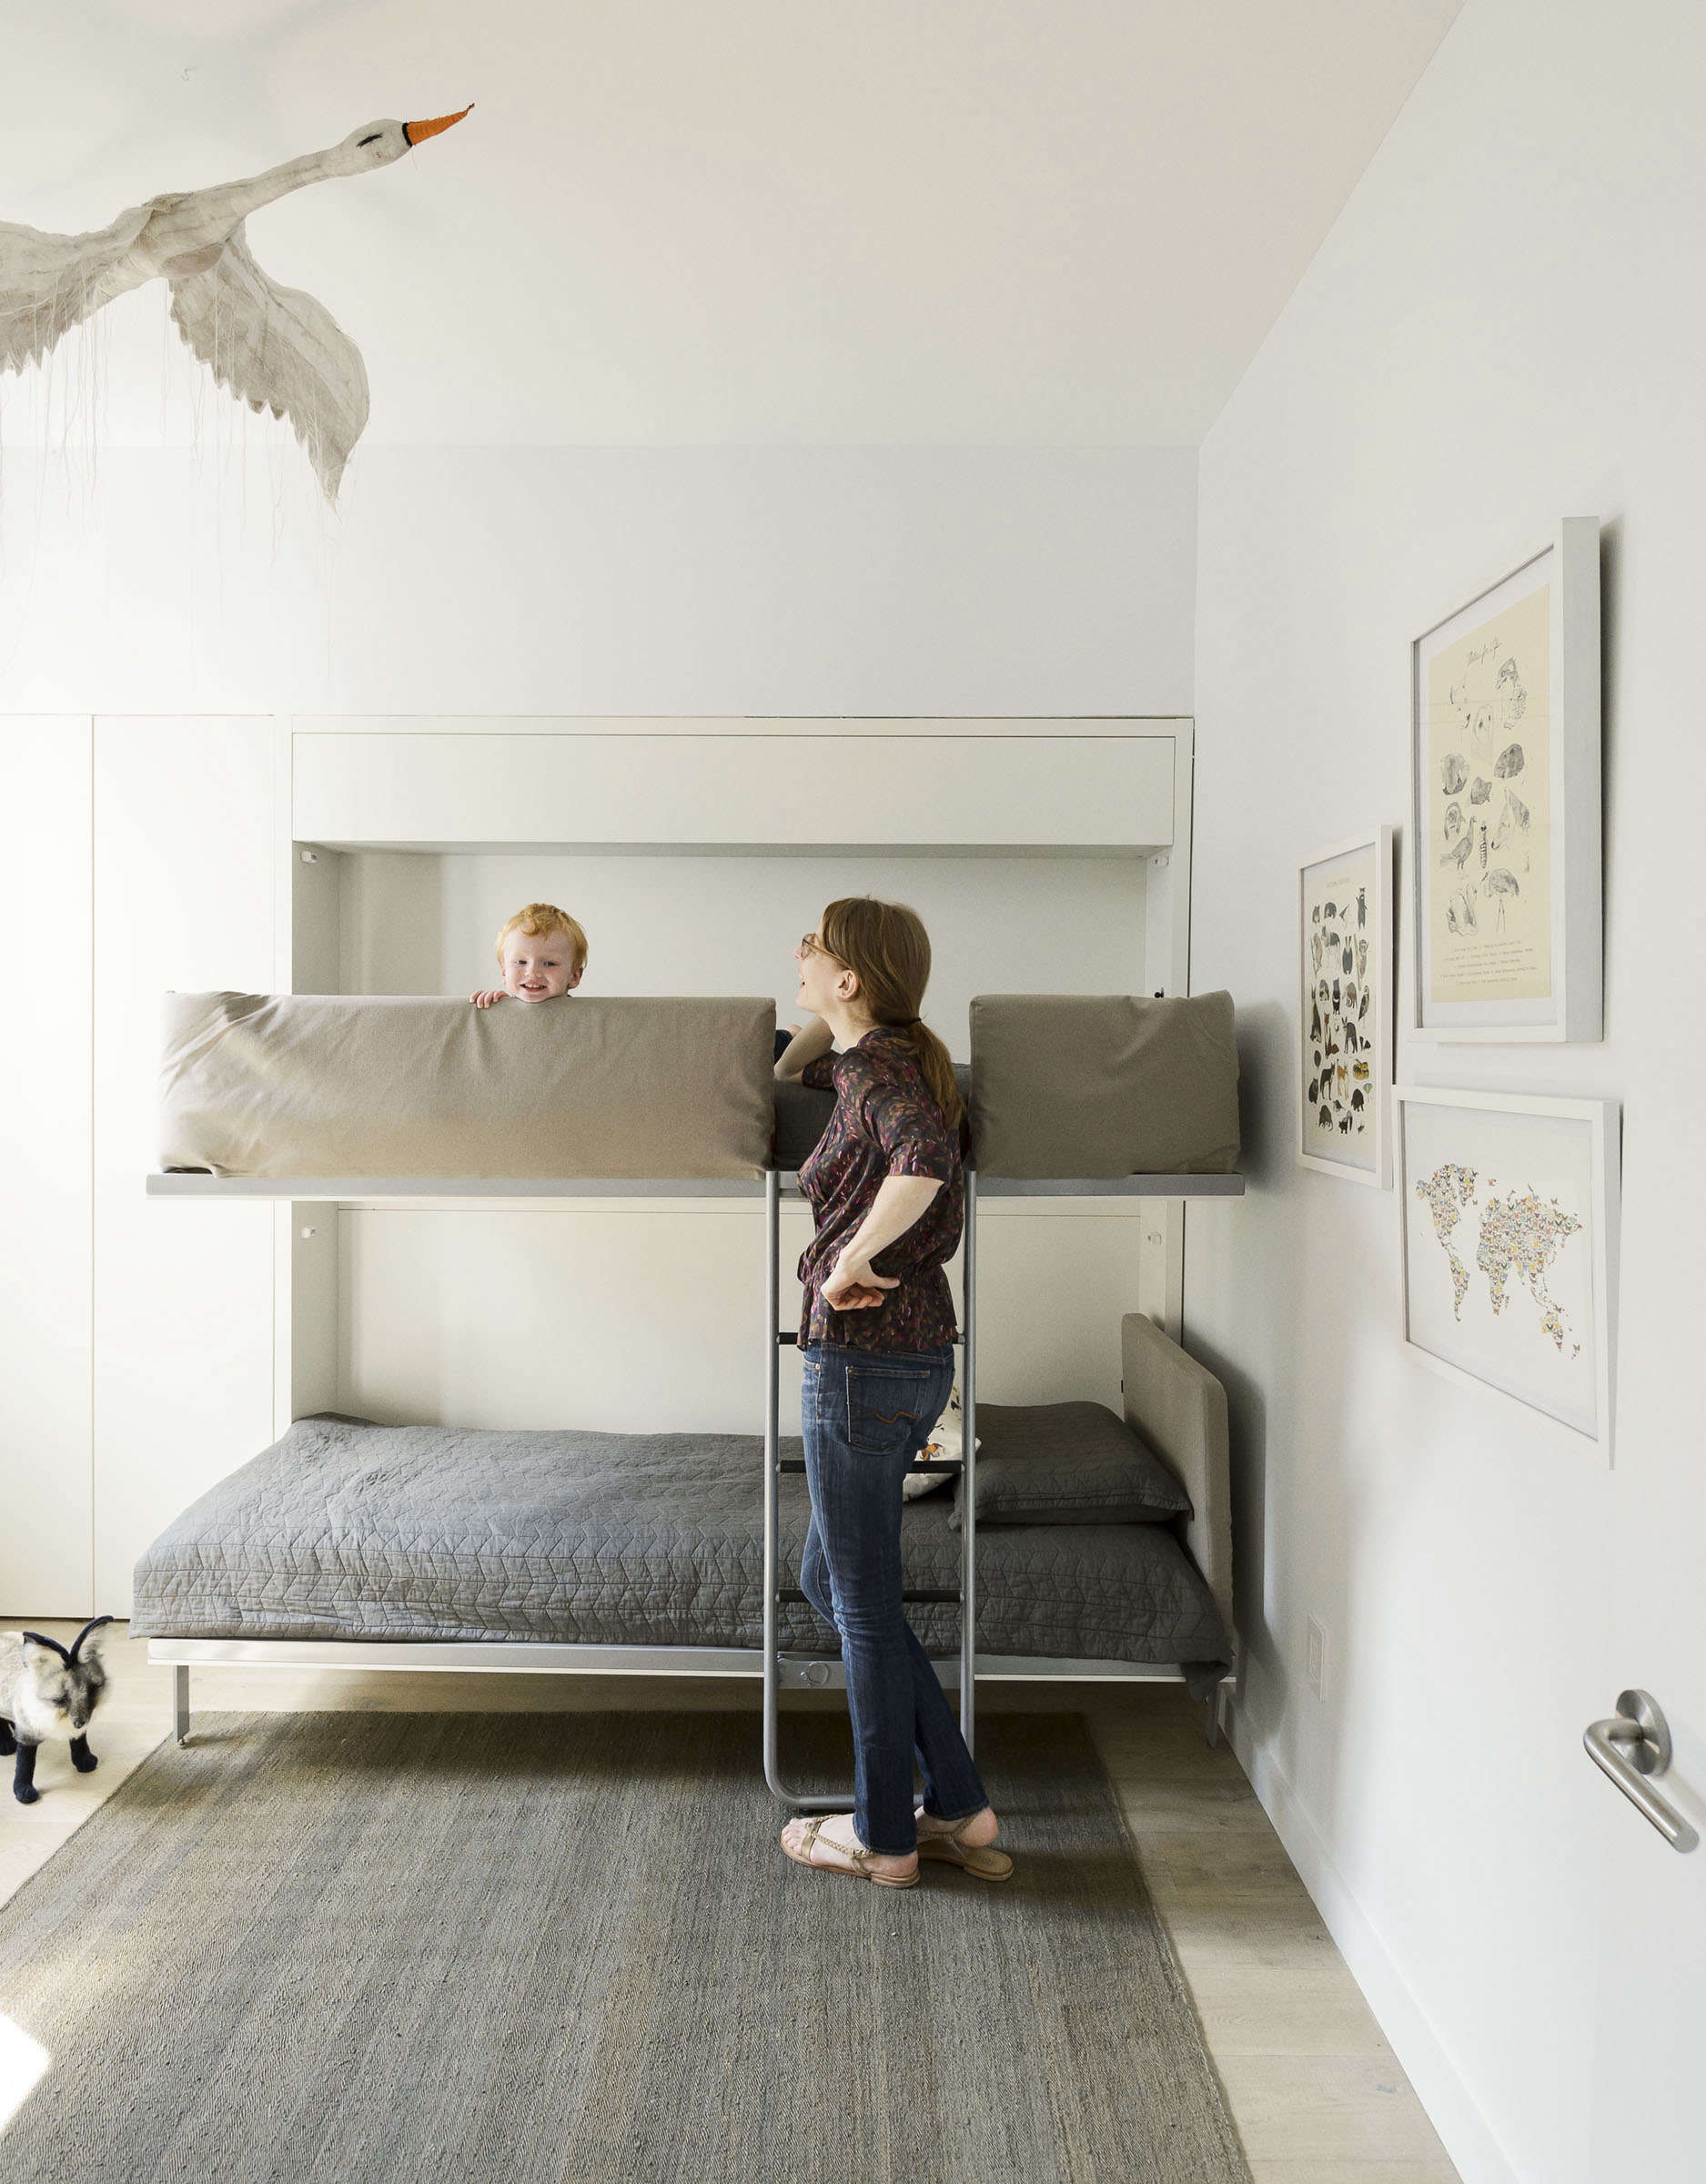 Archive Dive: Our 13 Favorite Built-In Bunk Beds - The Organized Home